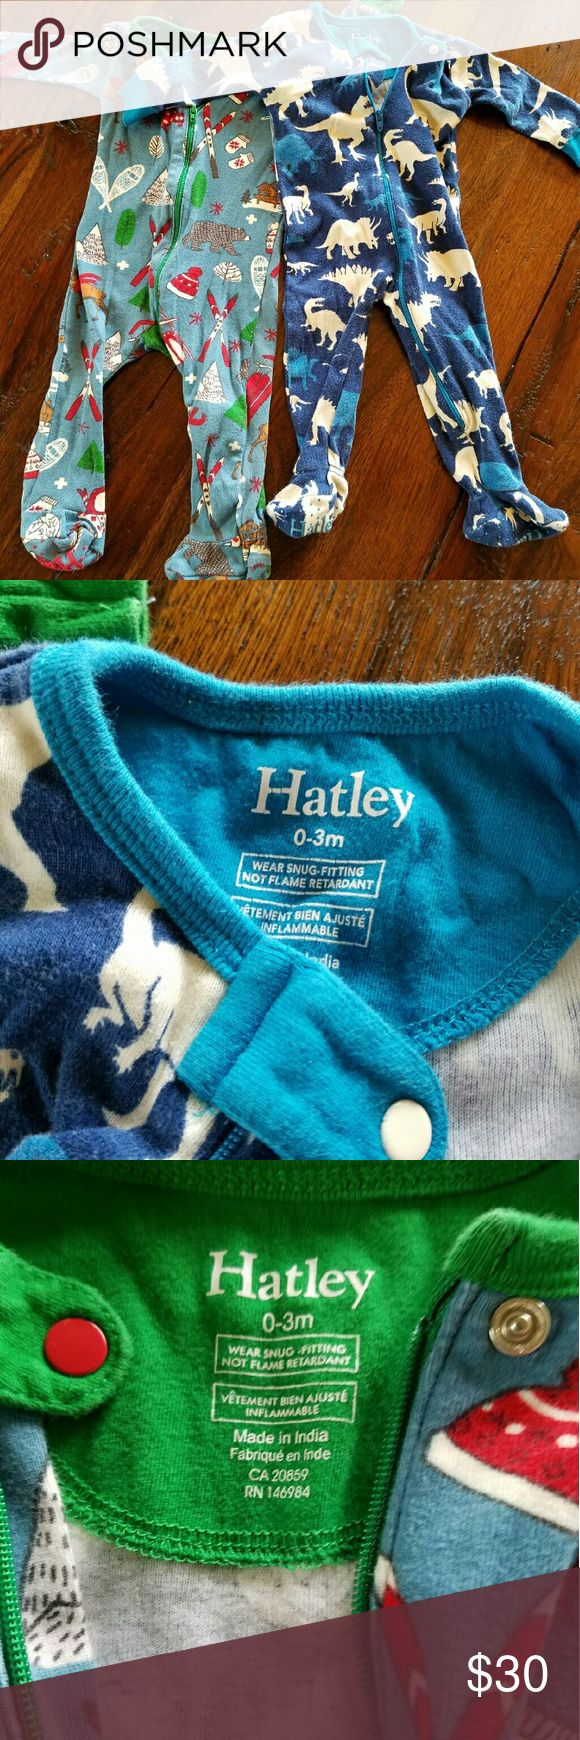 2 Hatley Sleepers Total two! 0 to 3 month sleeper with zipper. Each only worn a few times. Excellent condition with no stains. Hatley Pajamas Pajama Sets